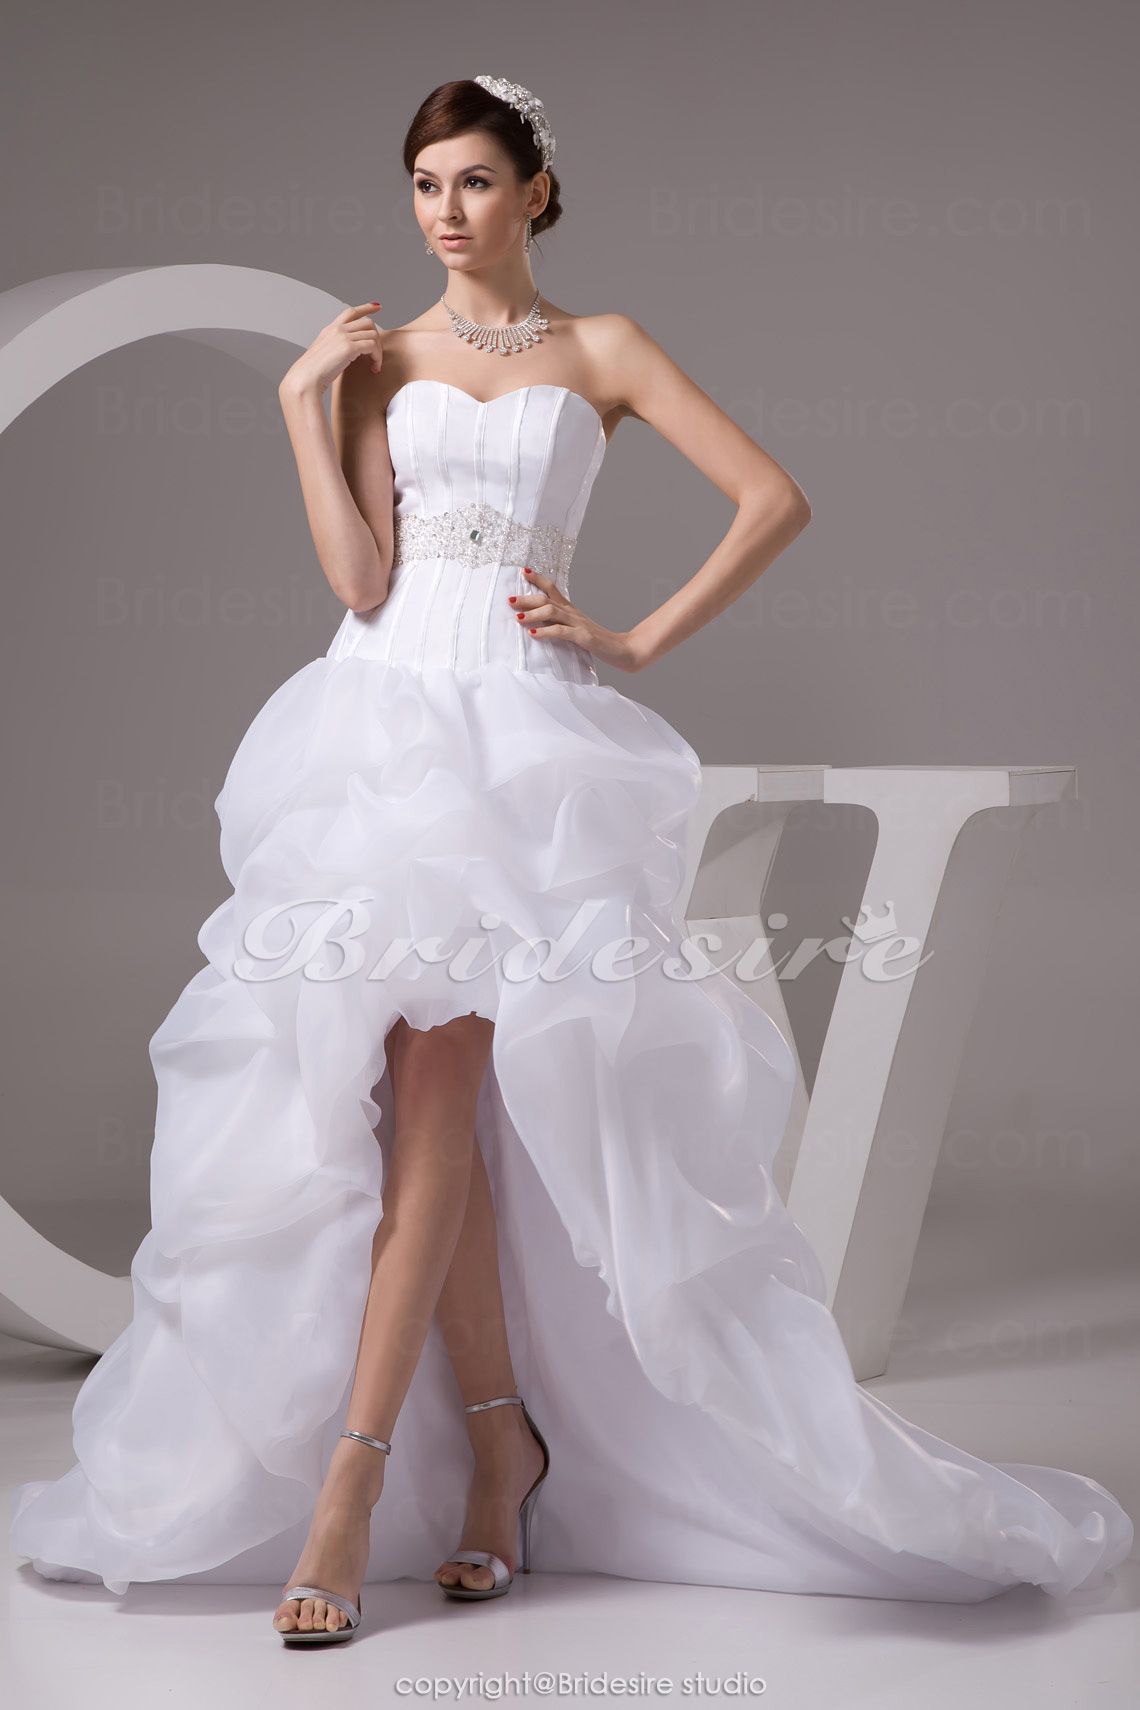 A-line Sweetheart Court Train Sleeveless Organza Satin Wedding Dress